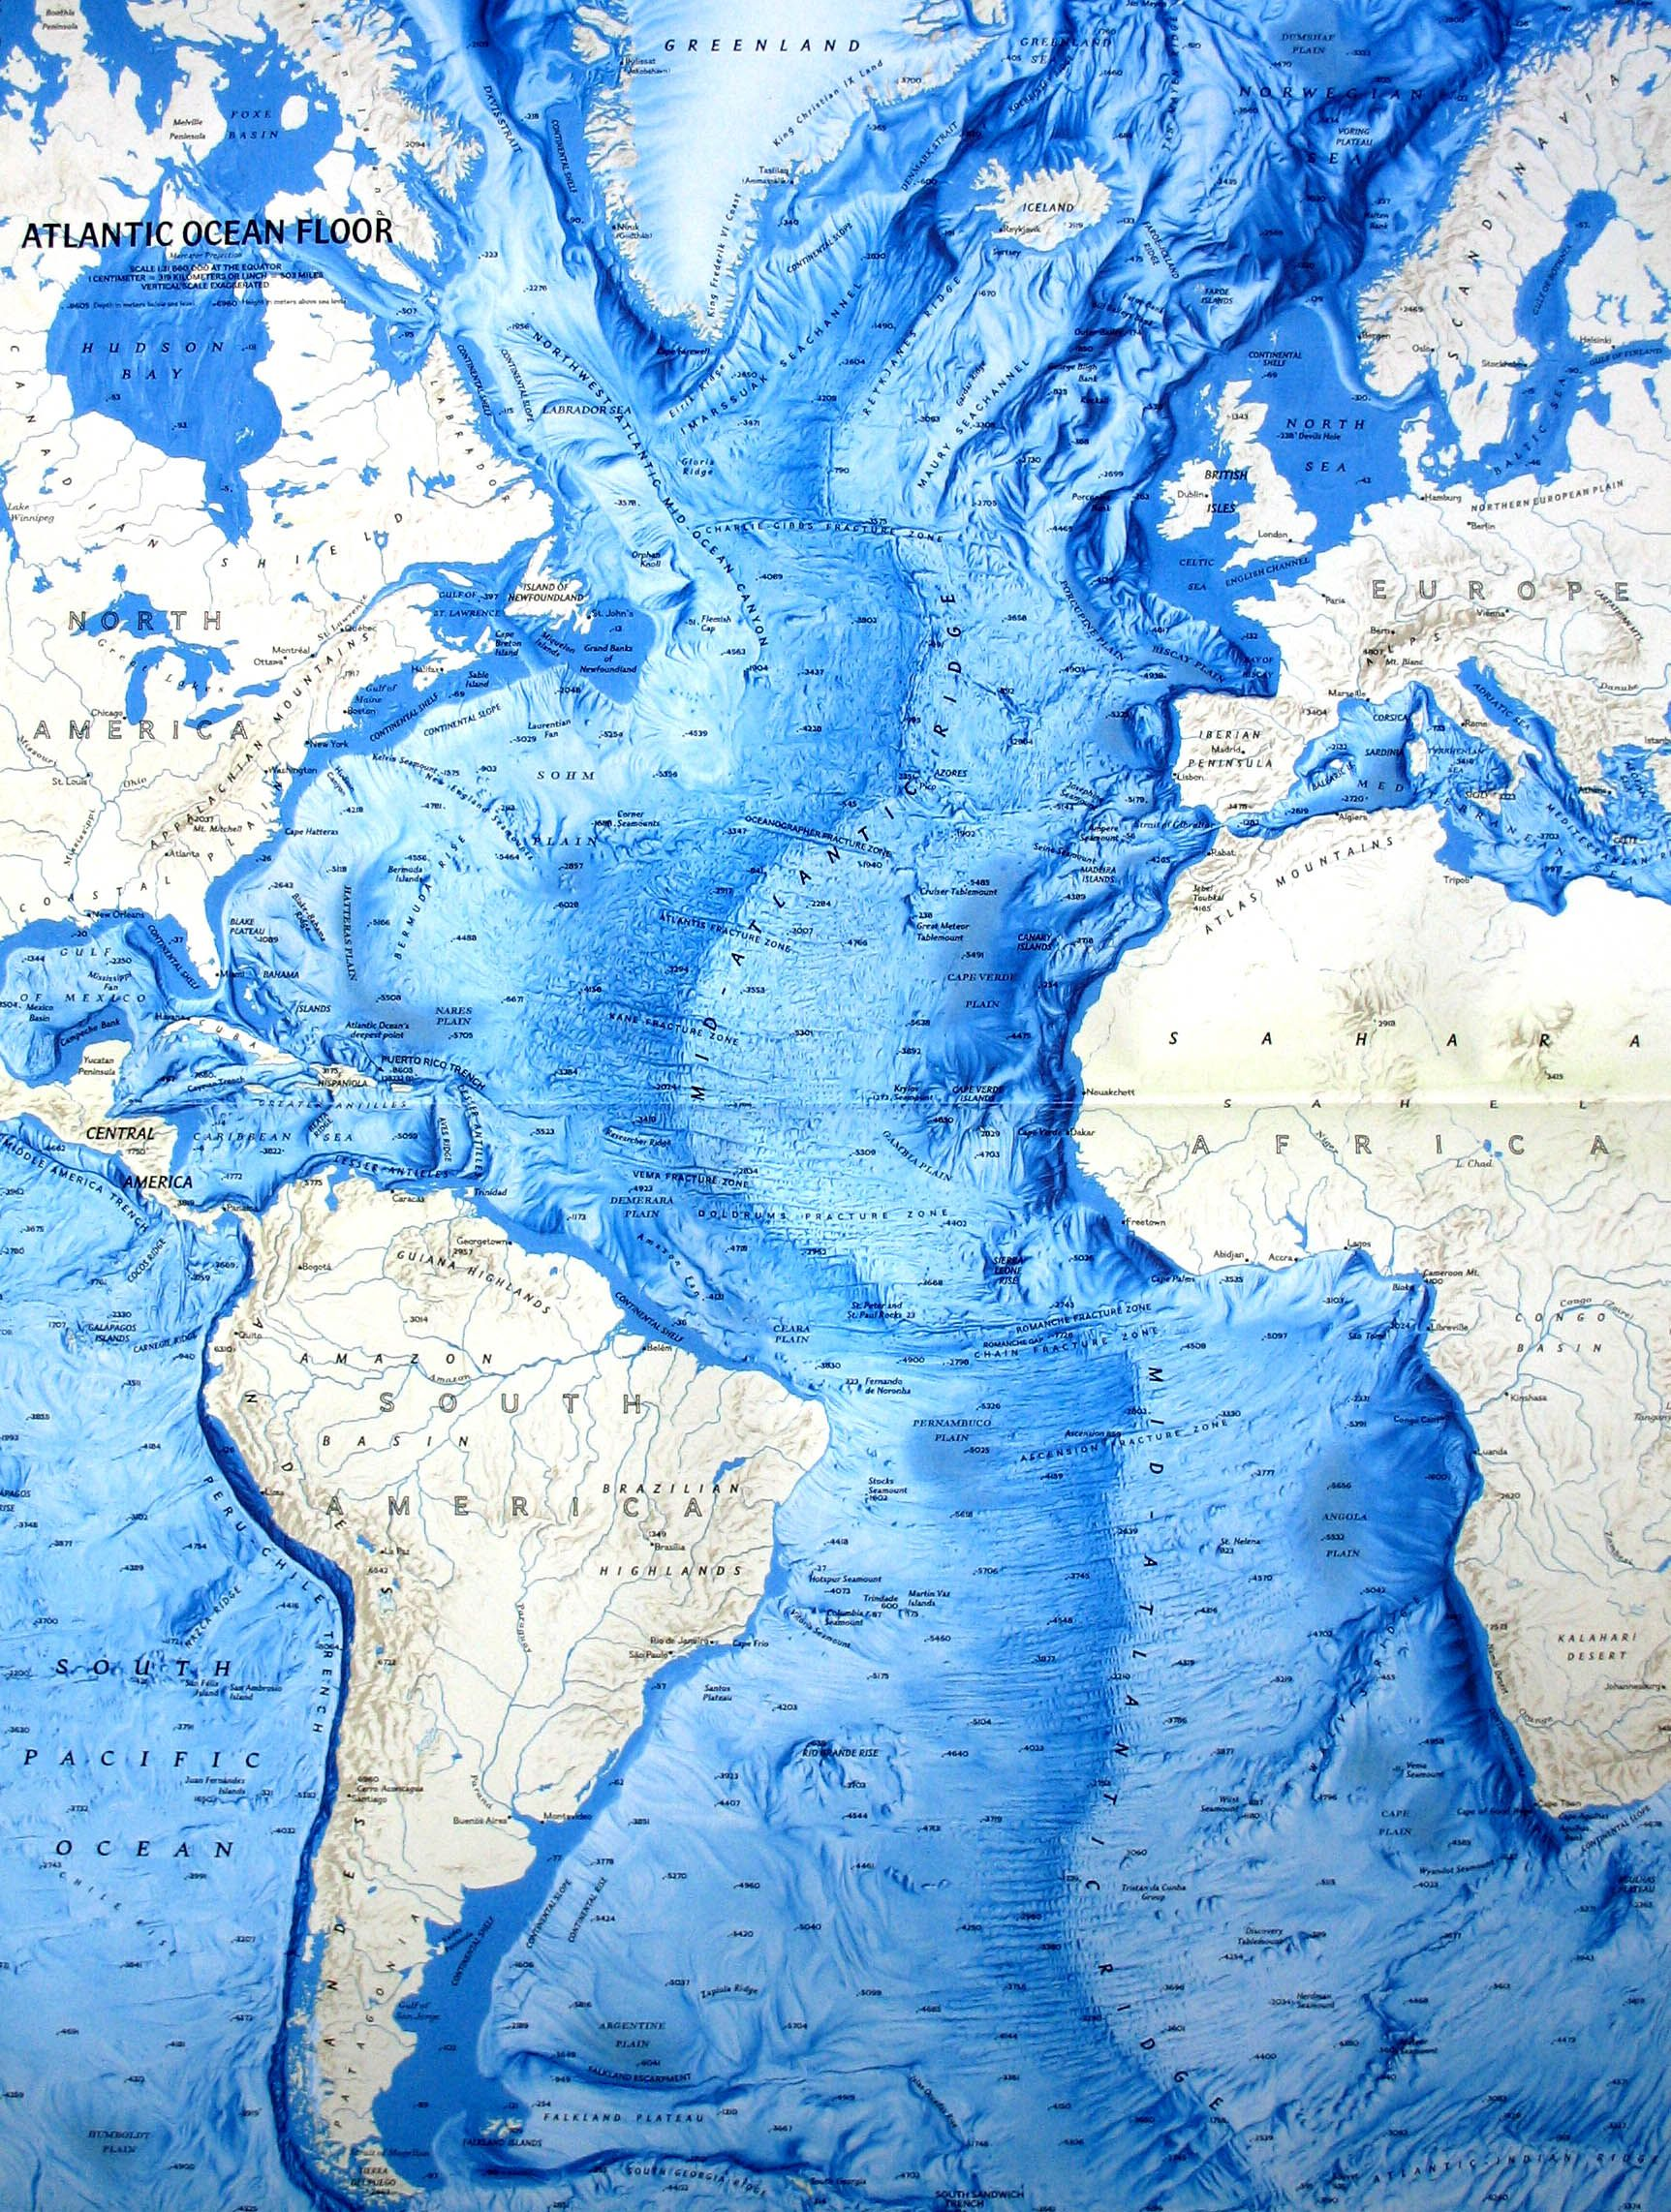 Ocean floor relief maps detailed maps of sea and ocean depths ocean floor relief maps detailed maps of sea and ocean depths foto gallery on orangesmile gumiabroncs Image collections